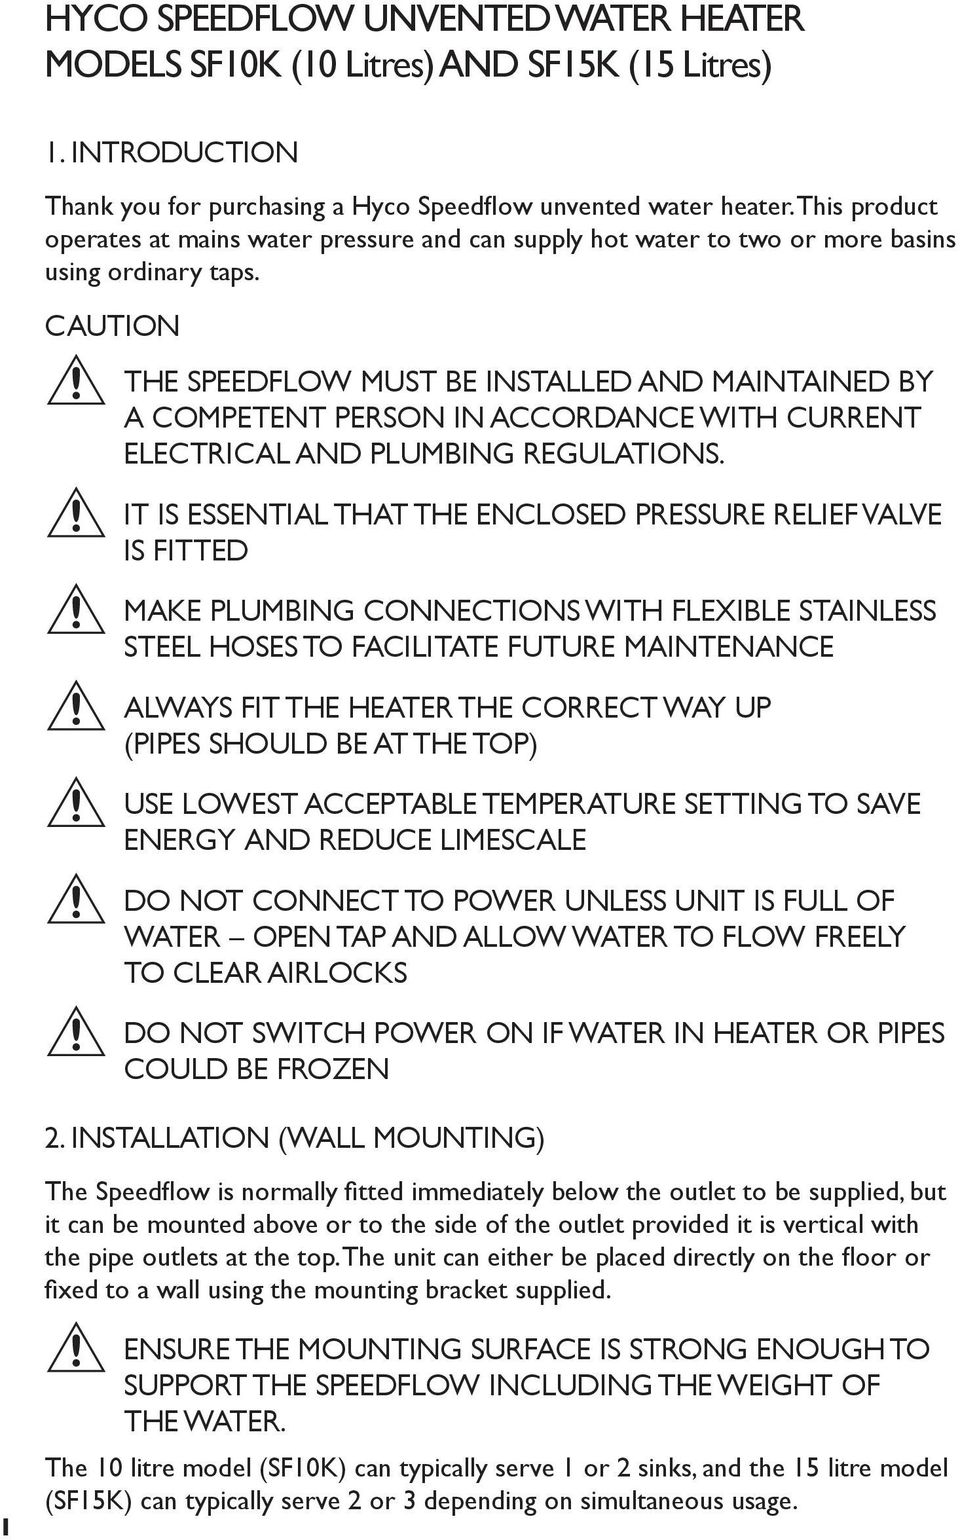 caution THE SPEEDFLOW MUST BE INSTALLED AND MAINTAINED BY A COMPETENT PERSON IN ACCORDANCE WITH CURRENT ELECTRICAL AND PLUMBING REGULATIONS.